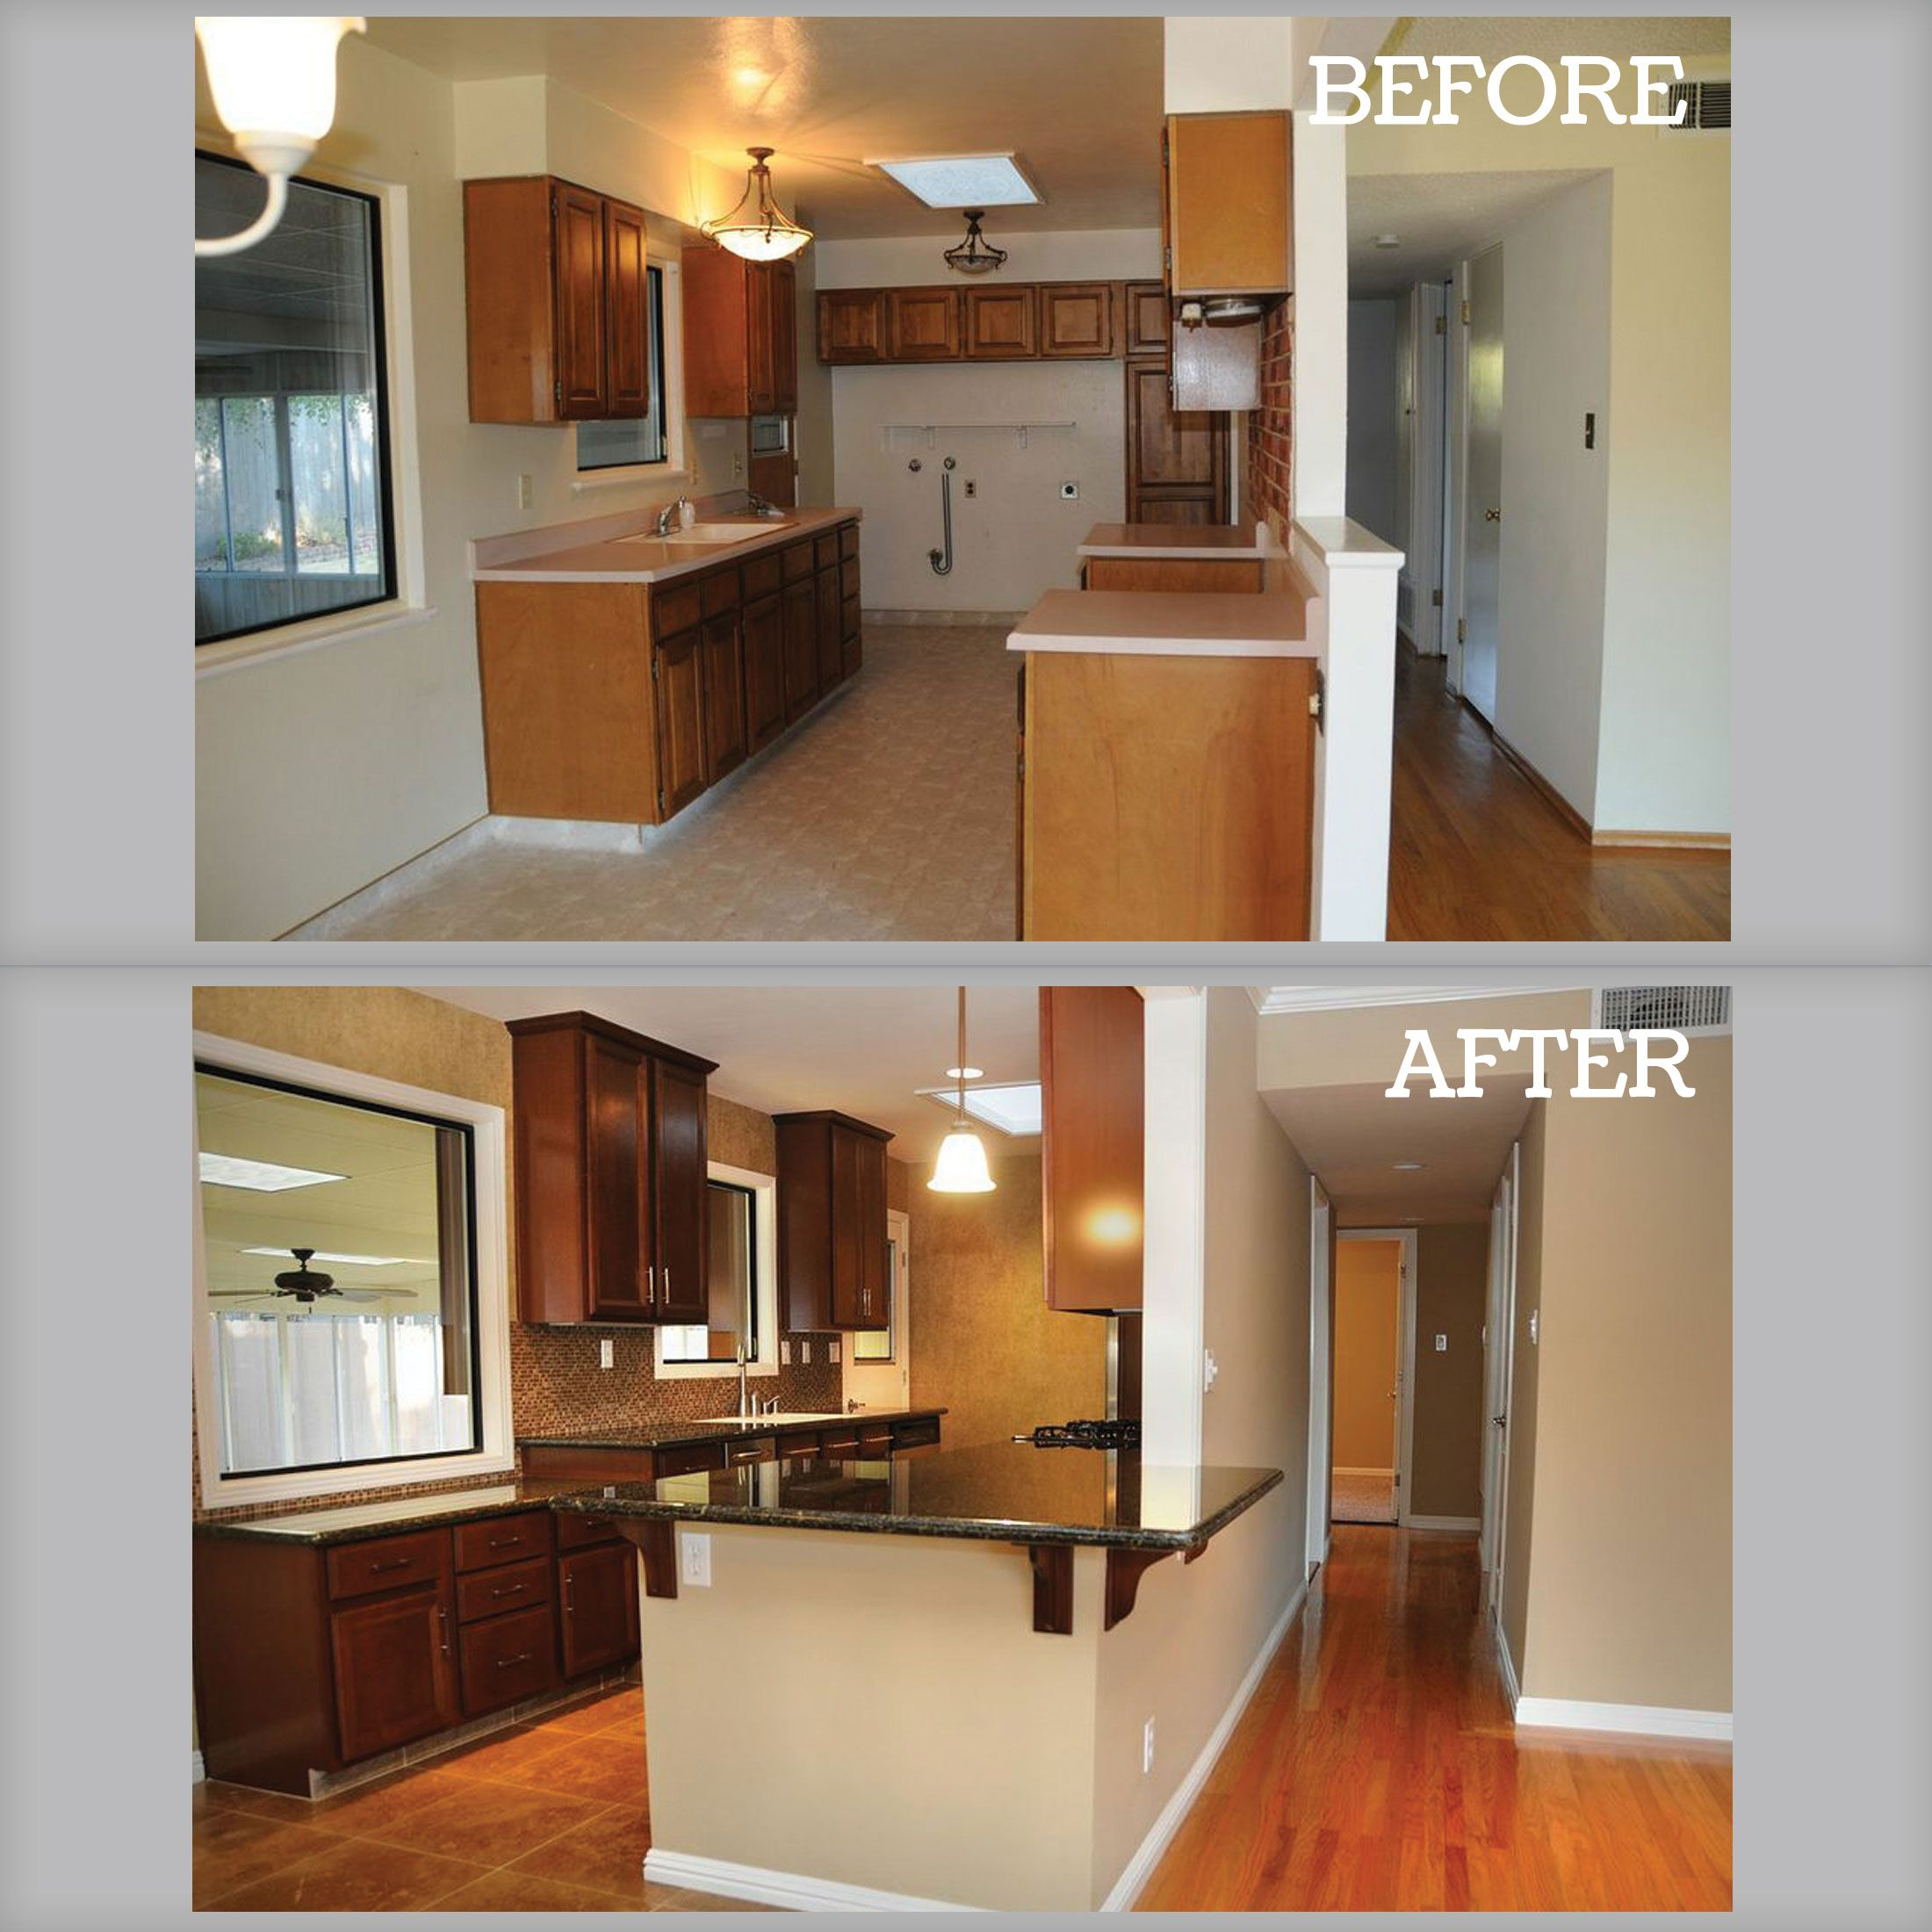 A Before And After Photo Of A Kitchen Remodel Hybrid Homes